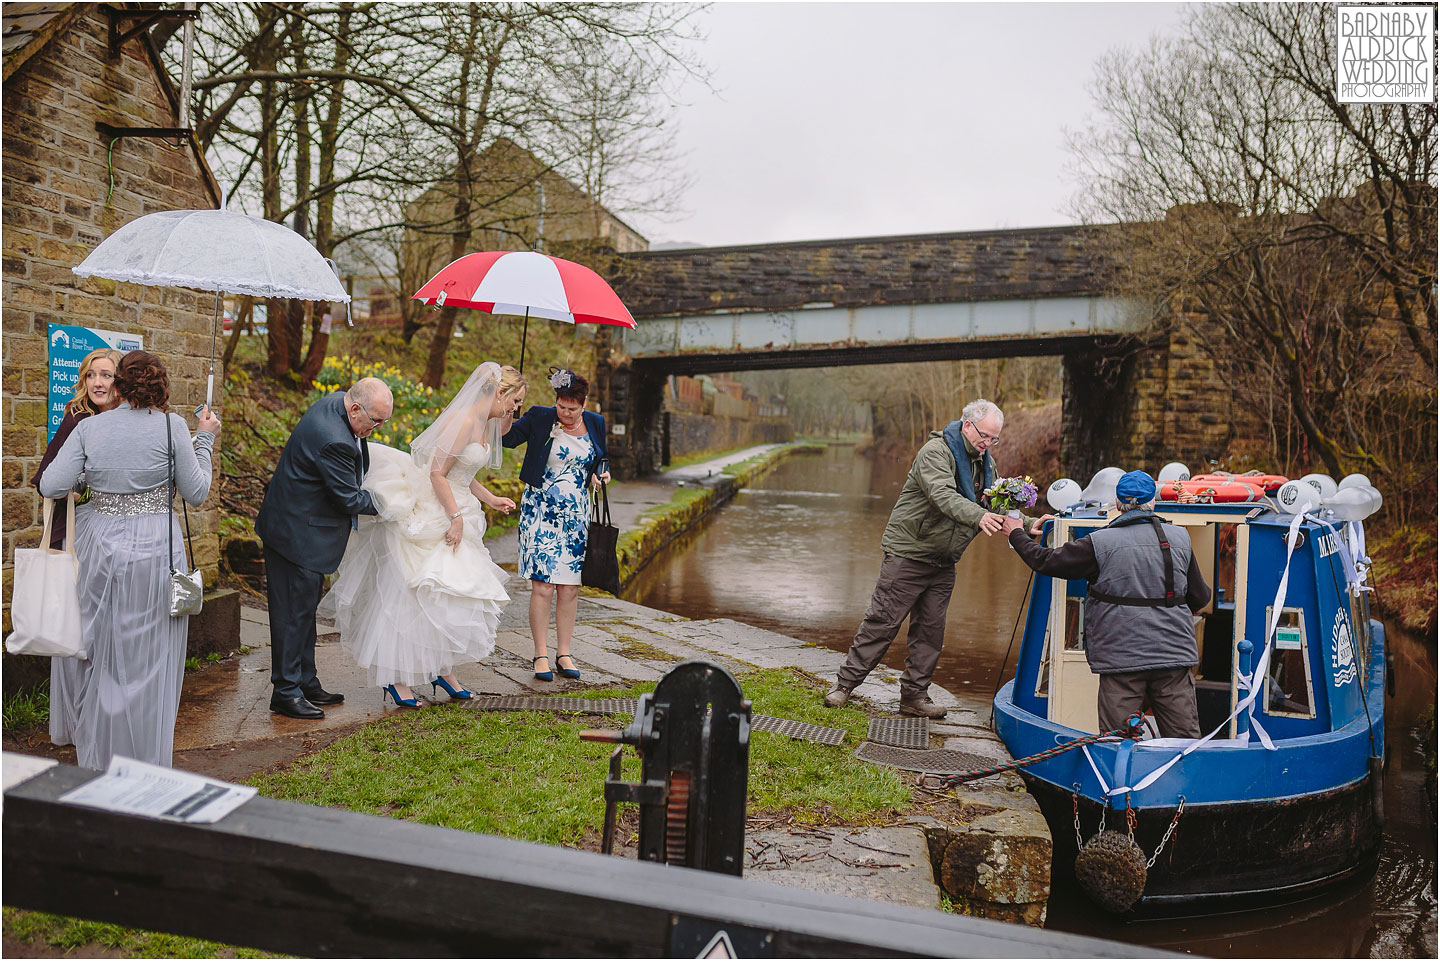 Canal boat wedding photo on the way to a standedge tunnel ceremony, Marsden Wedding, Amazing Yorkshire Wedding Photos, Best Yorkshire Wedding Photos 2018